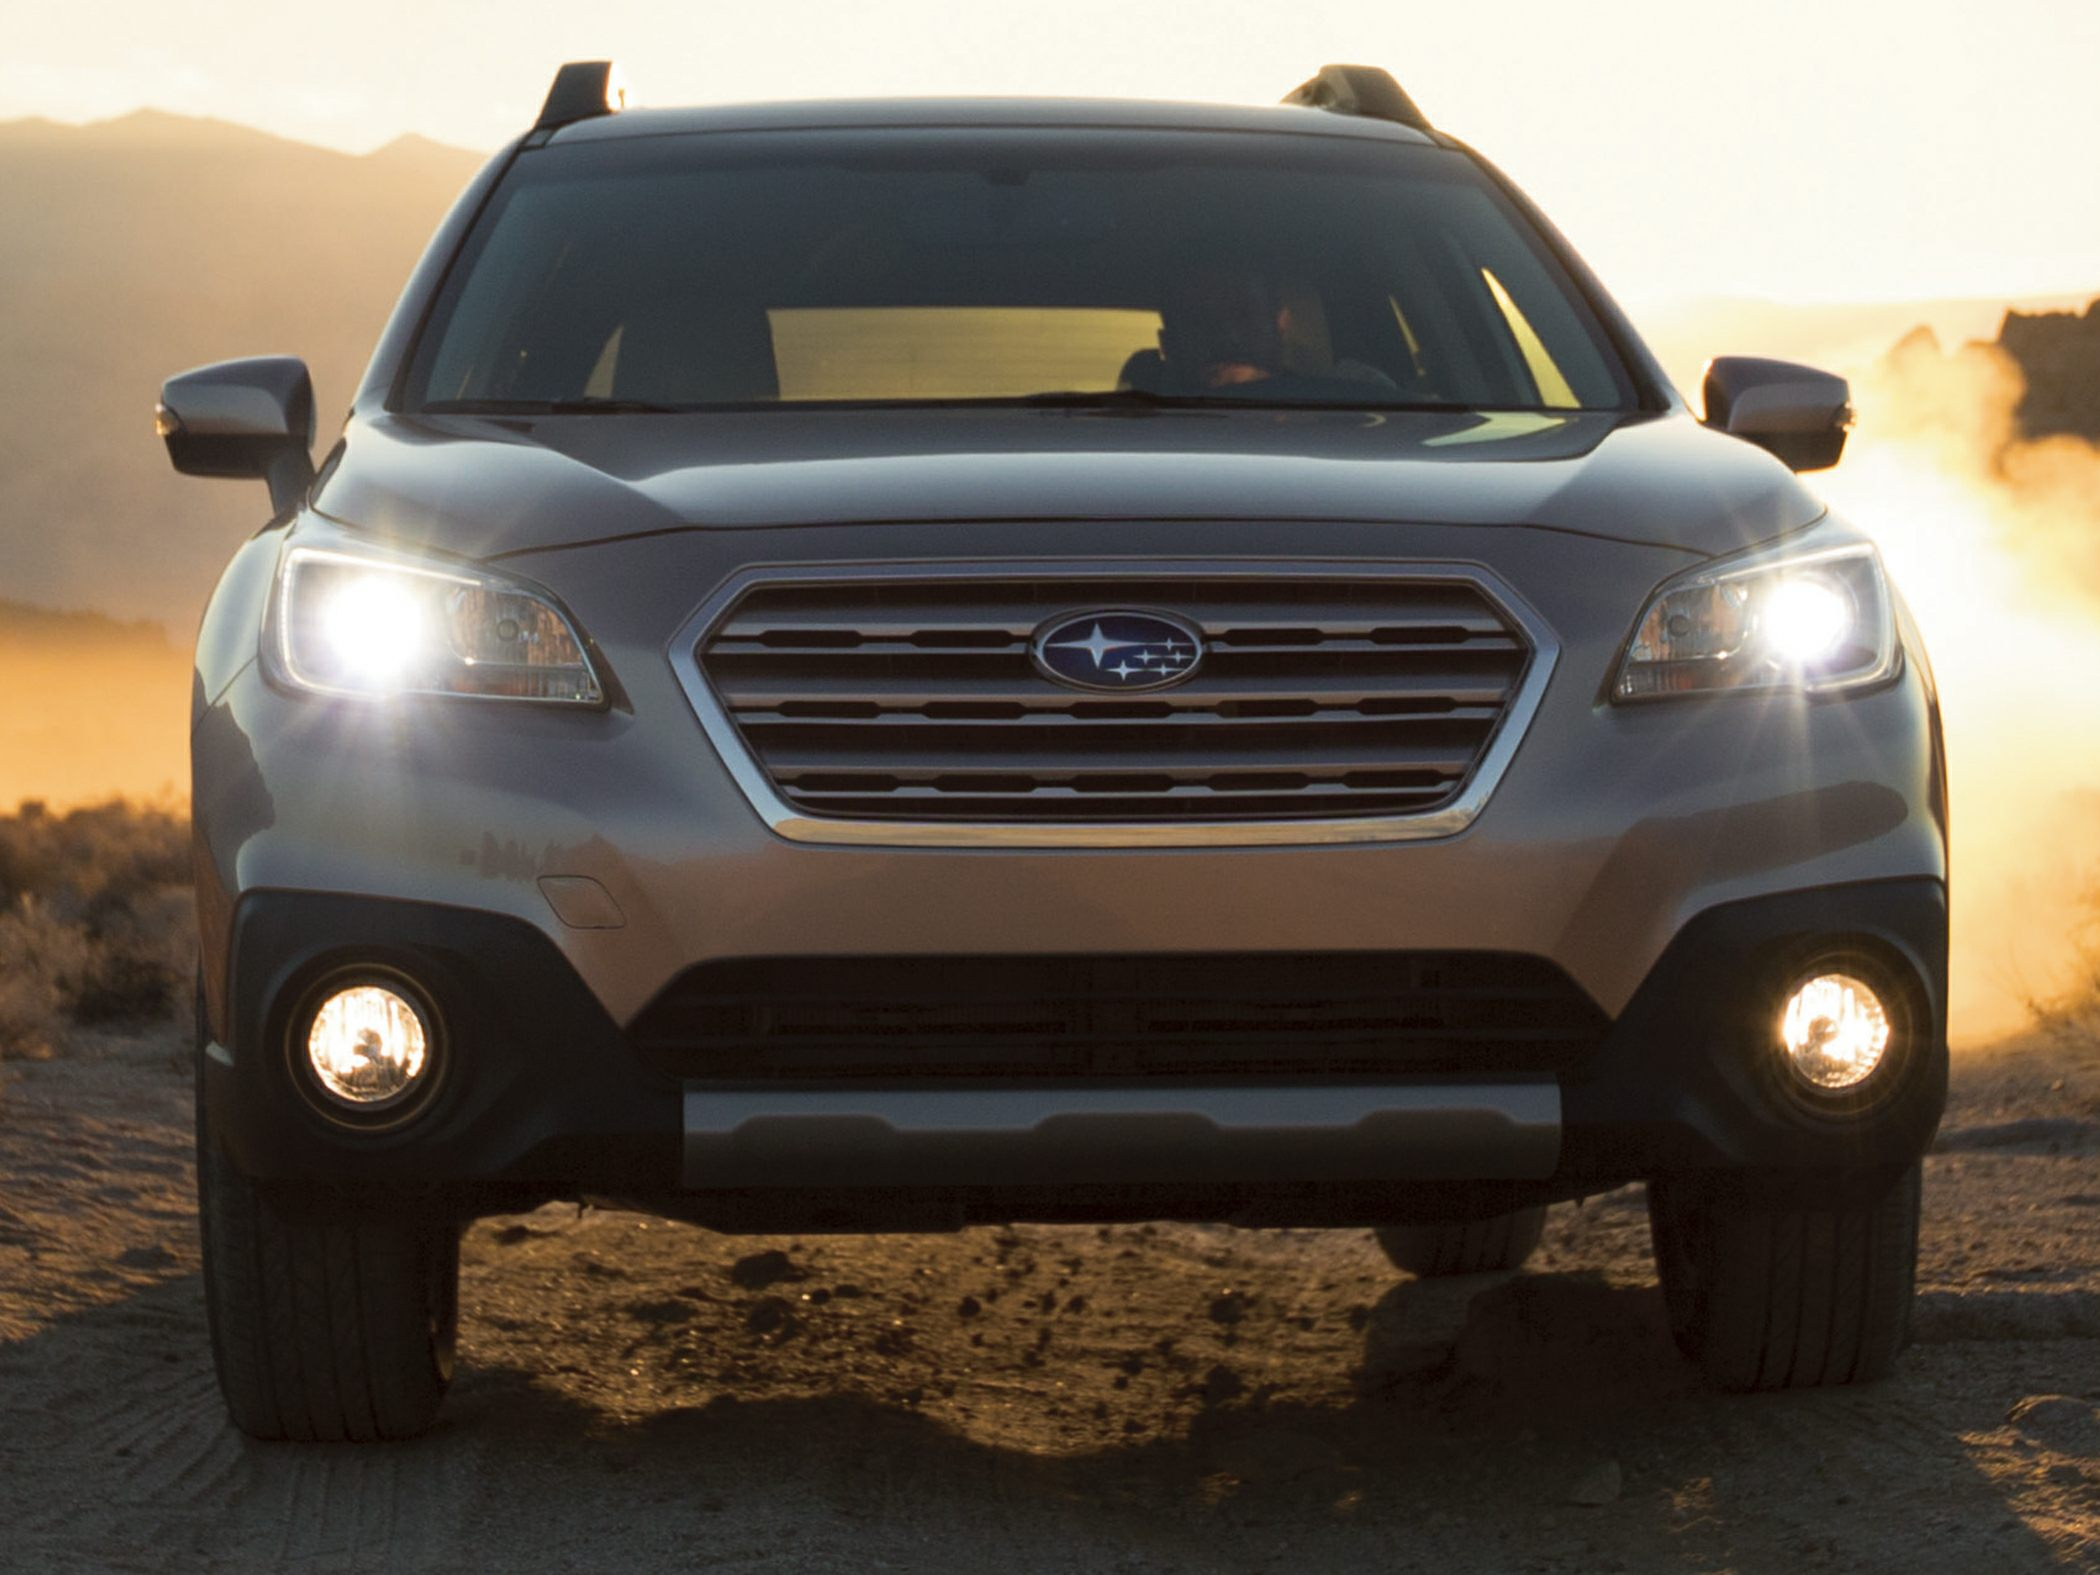 2017 subaru outback deals prices incentives leases overview whats new for 2017 vanachro Gallery